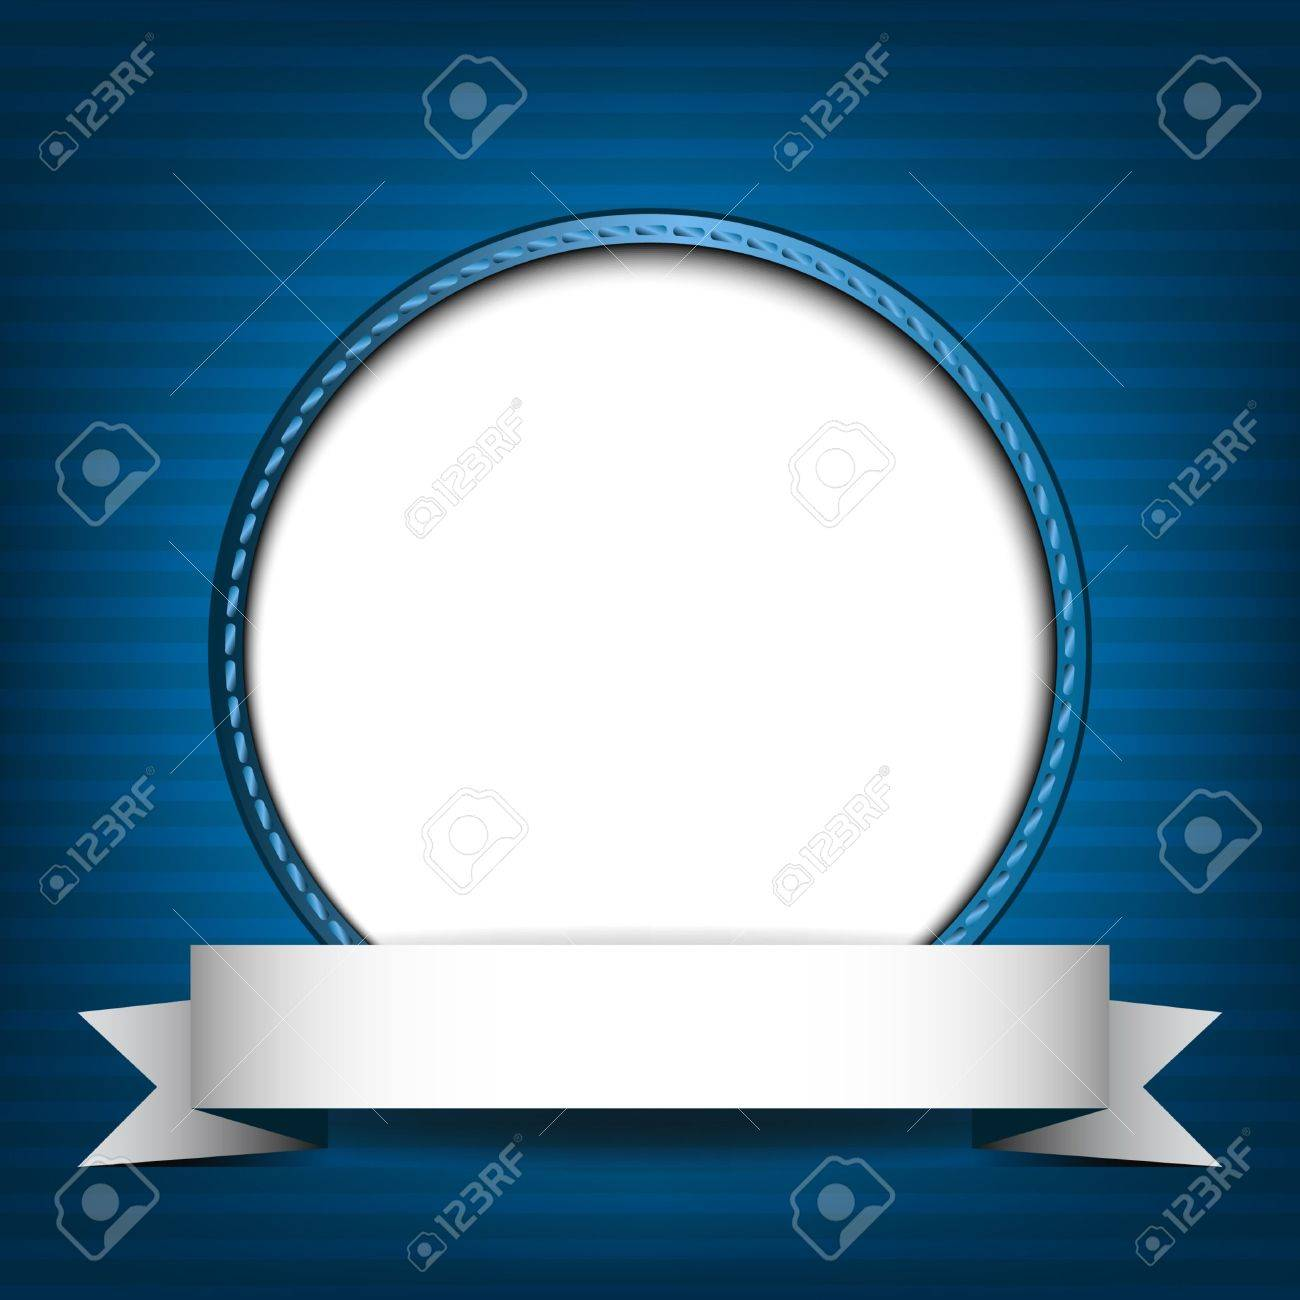 White circle with place for text or image on blue striped background Stock Vector - 18854564